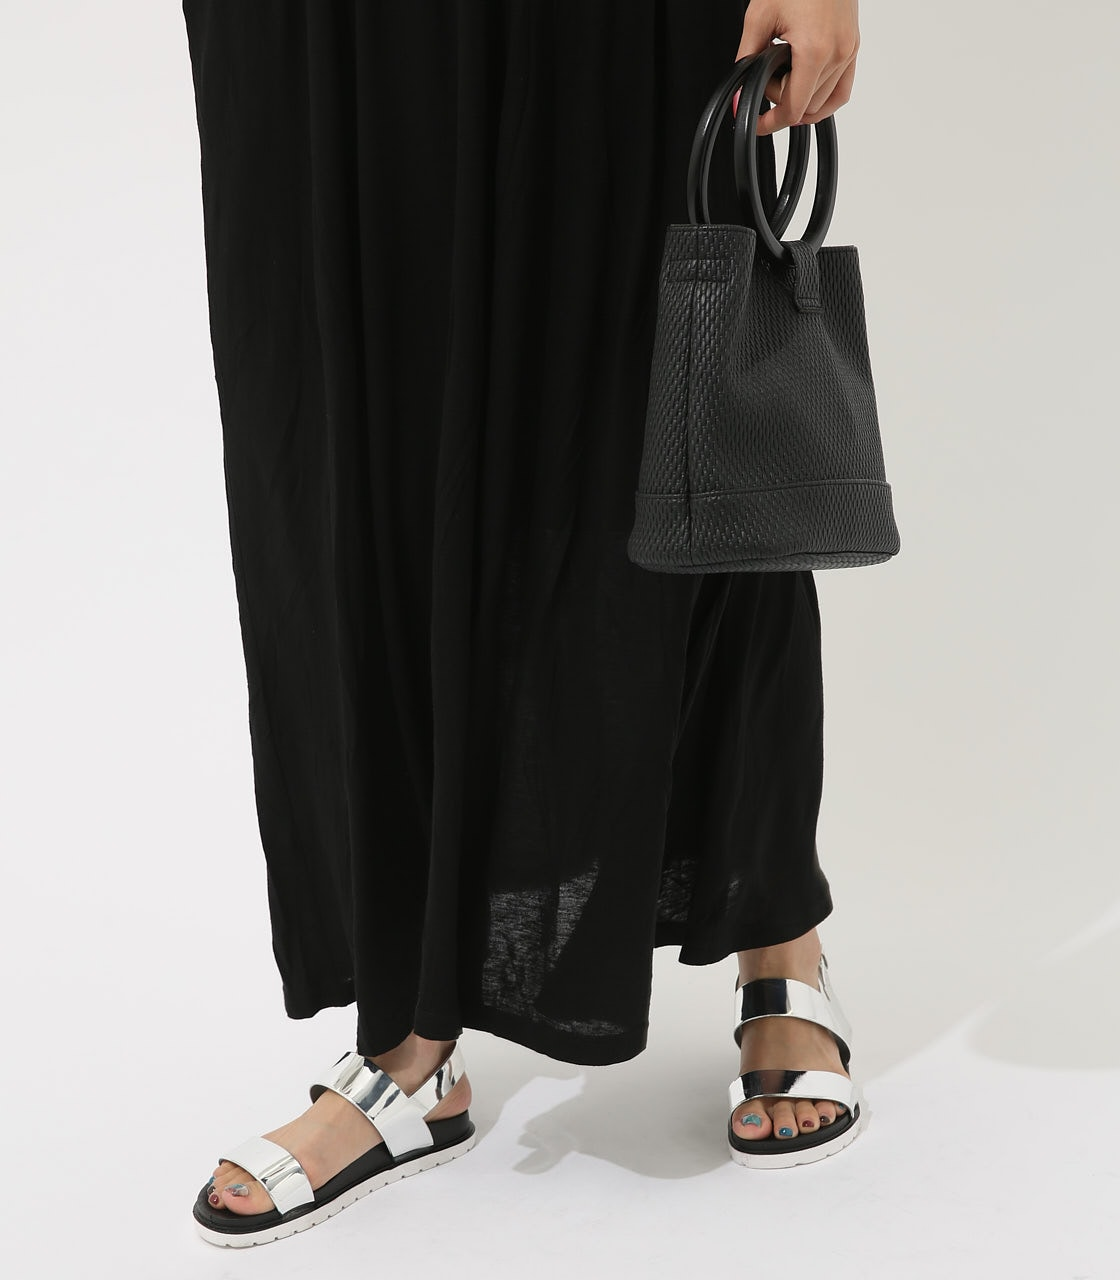 【AZUL BY MOUSSY】レースドッキングワンピース 詳細画像 BLK 4